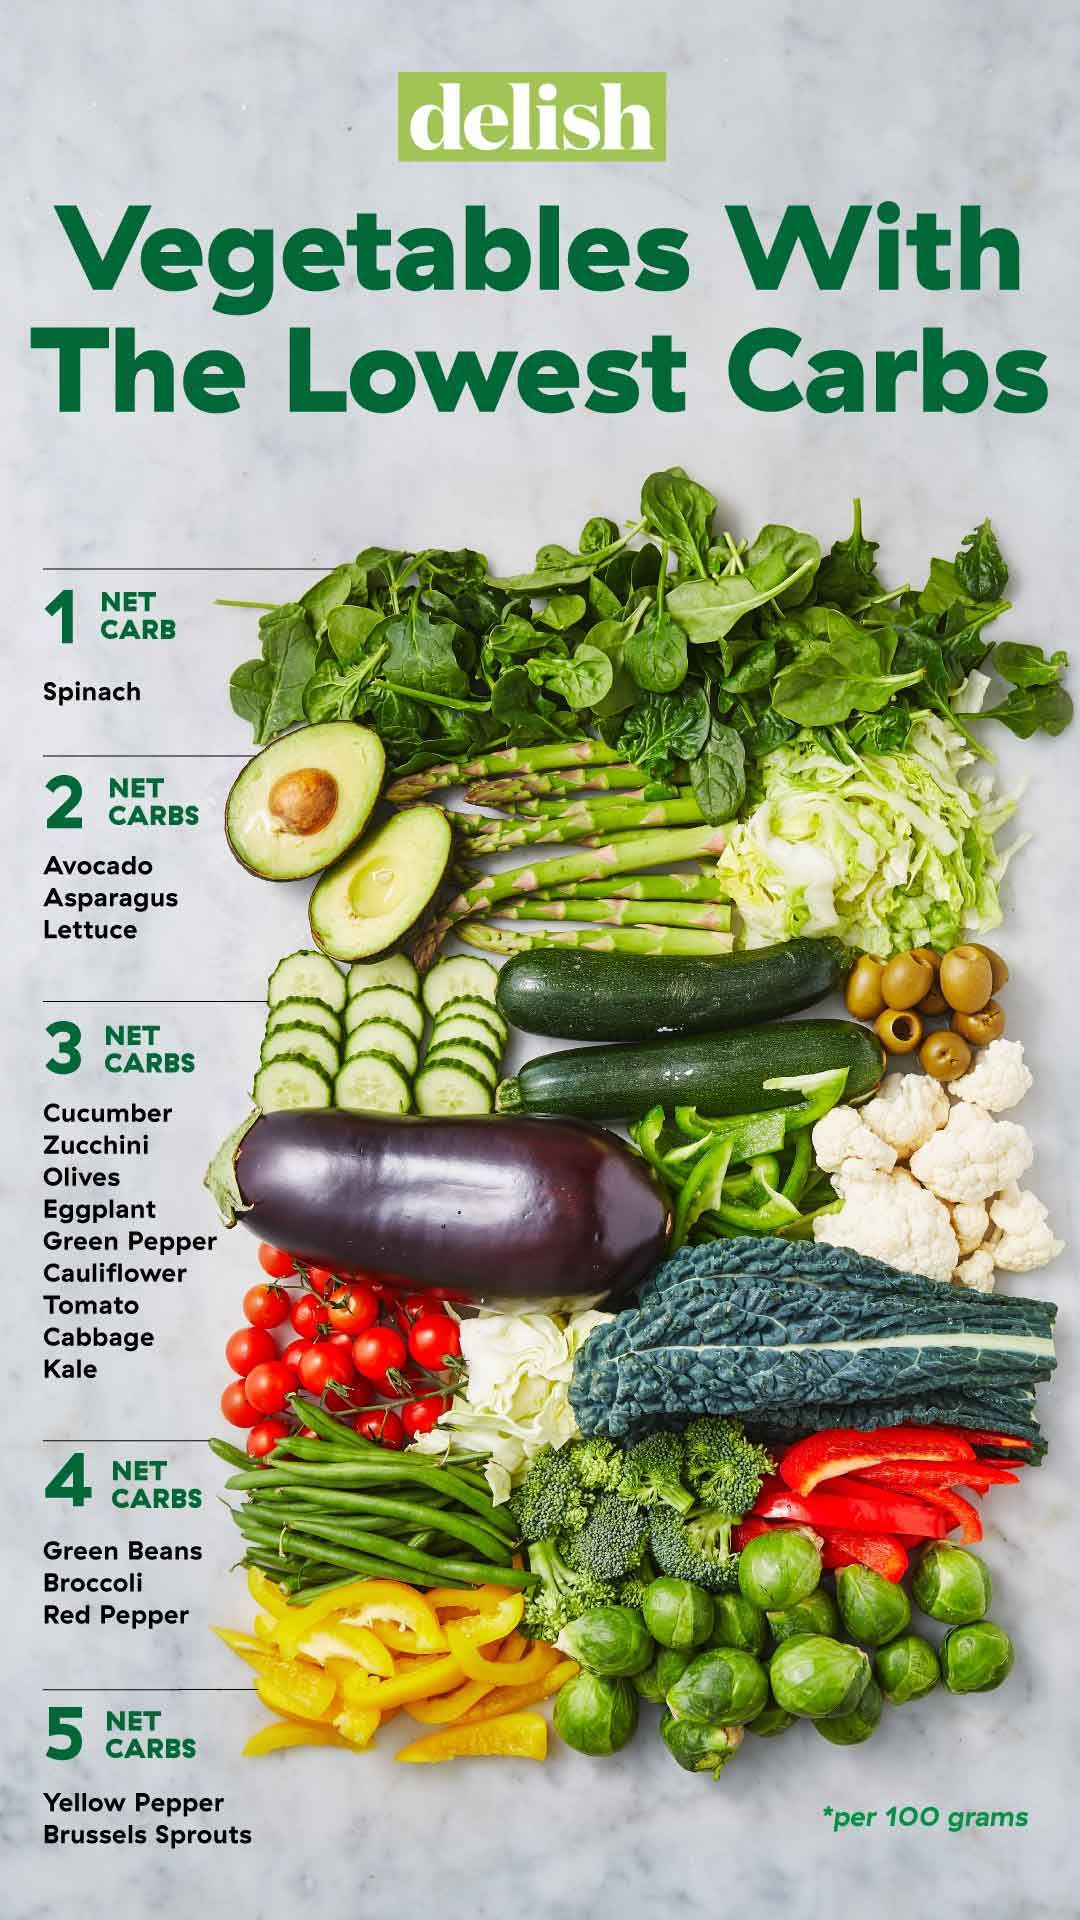 Psa You Can Eat So Many Vegetables On The Keto Diet Low Carb Vegetables Low Carb Fruit Keto Diet Food List